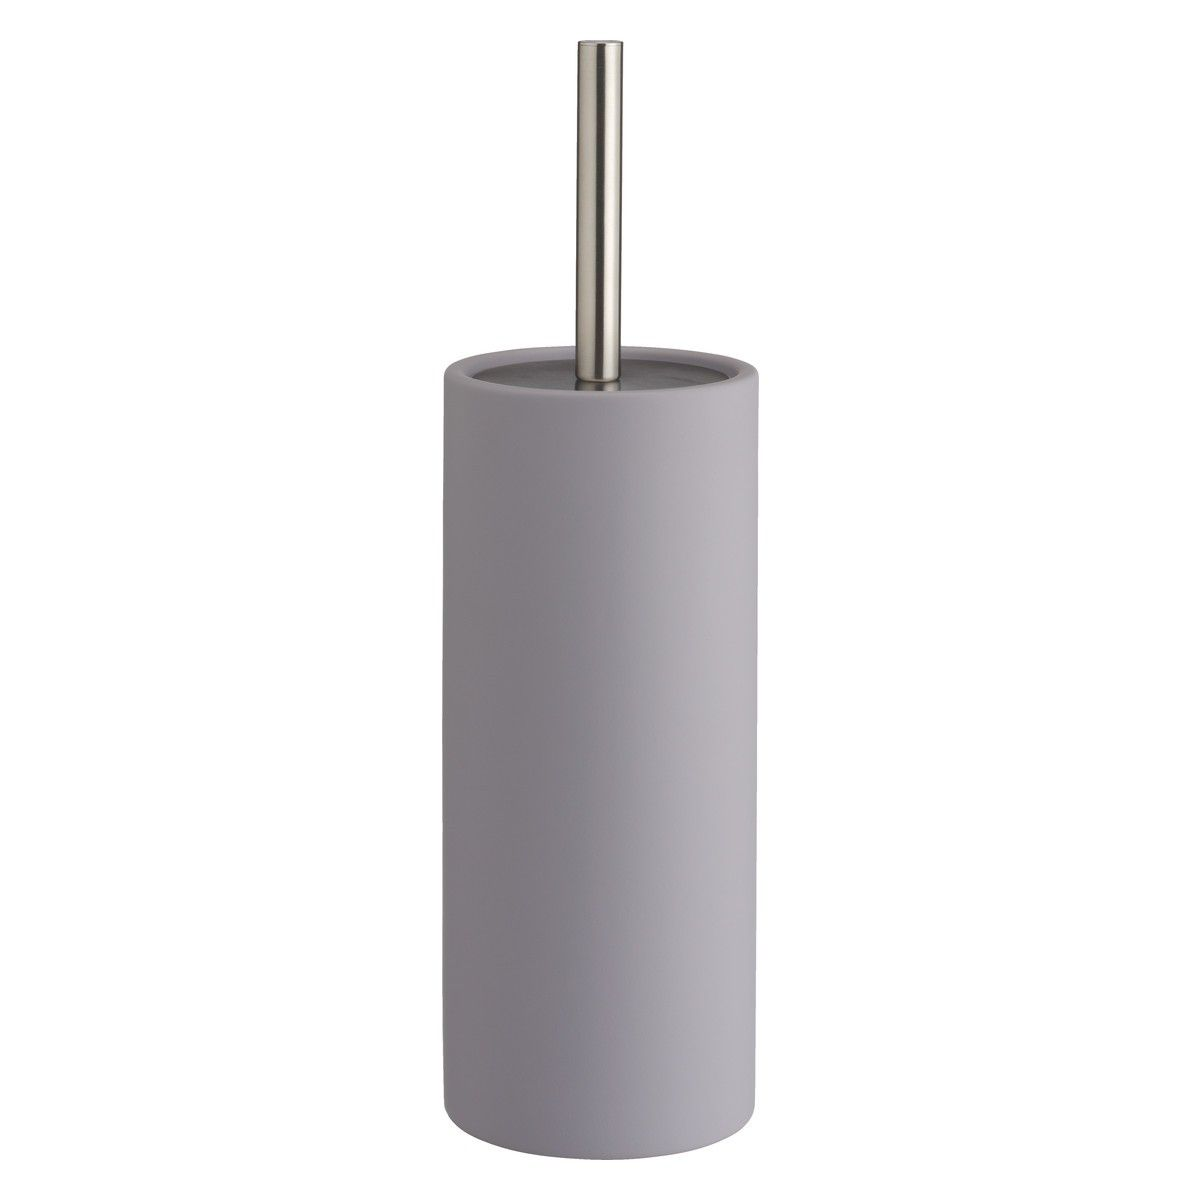 Lima Grey Soft Touch Toilet Brush And Holder Toilet Brushes And Holders Grey Toilet Toilet Brush